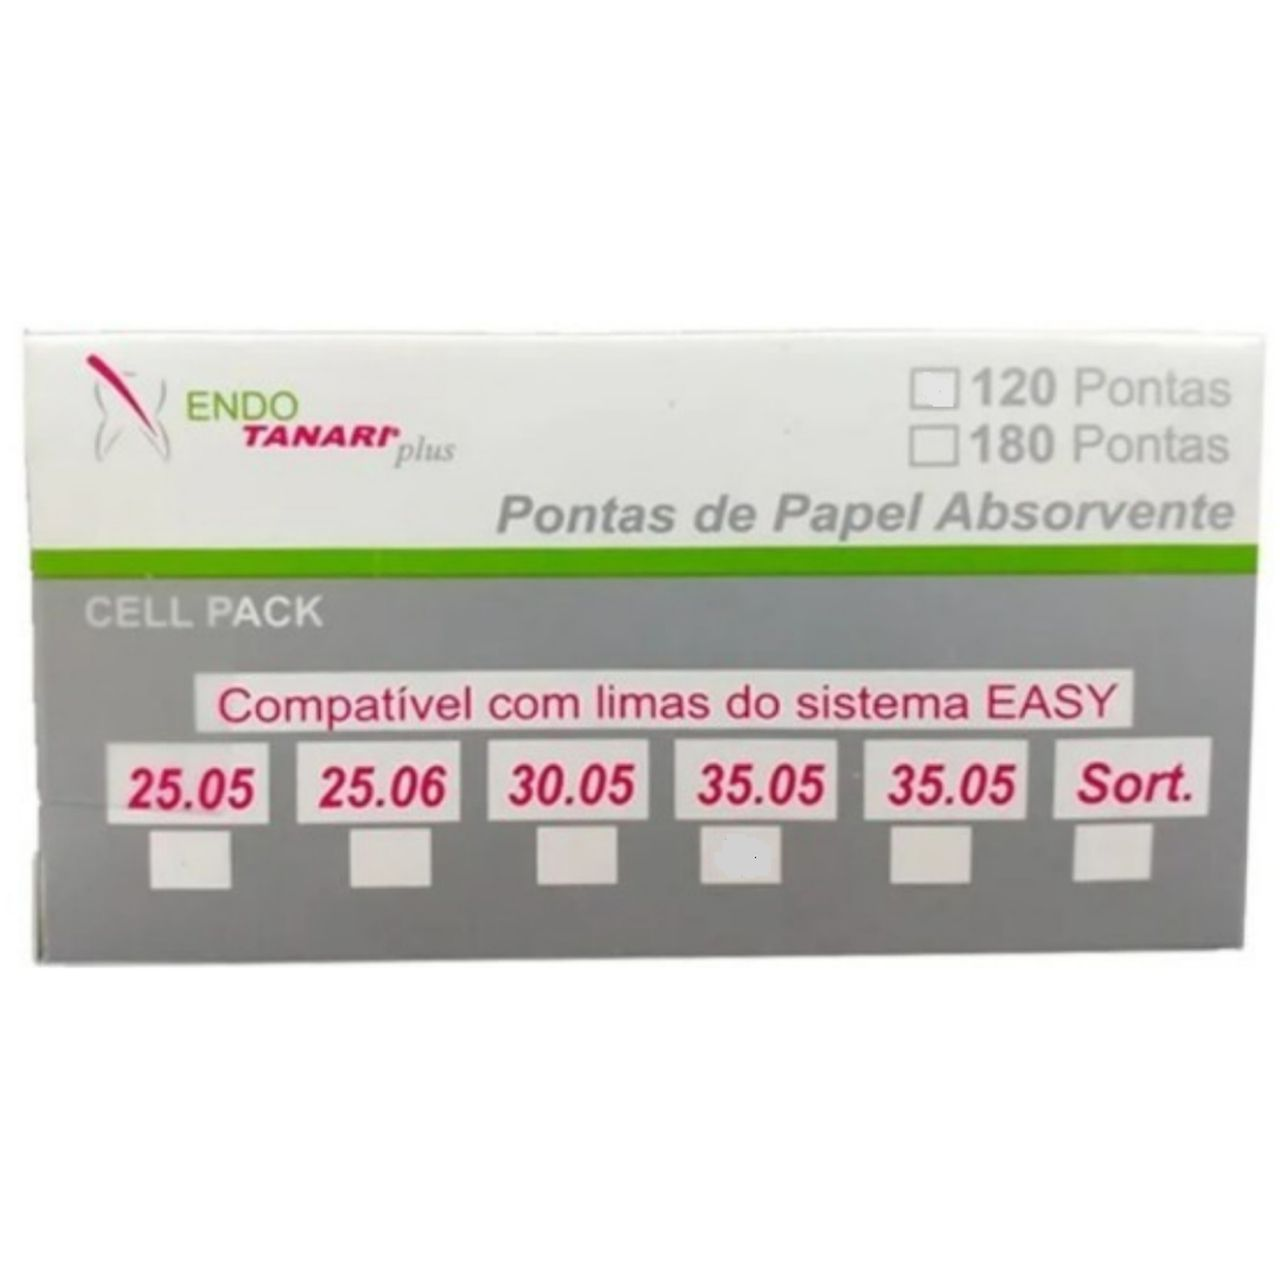 CONE DE PAPEL EASY LOGIC - ENDO POINTS TANARI